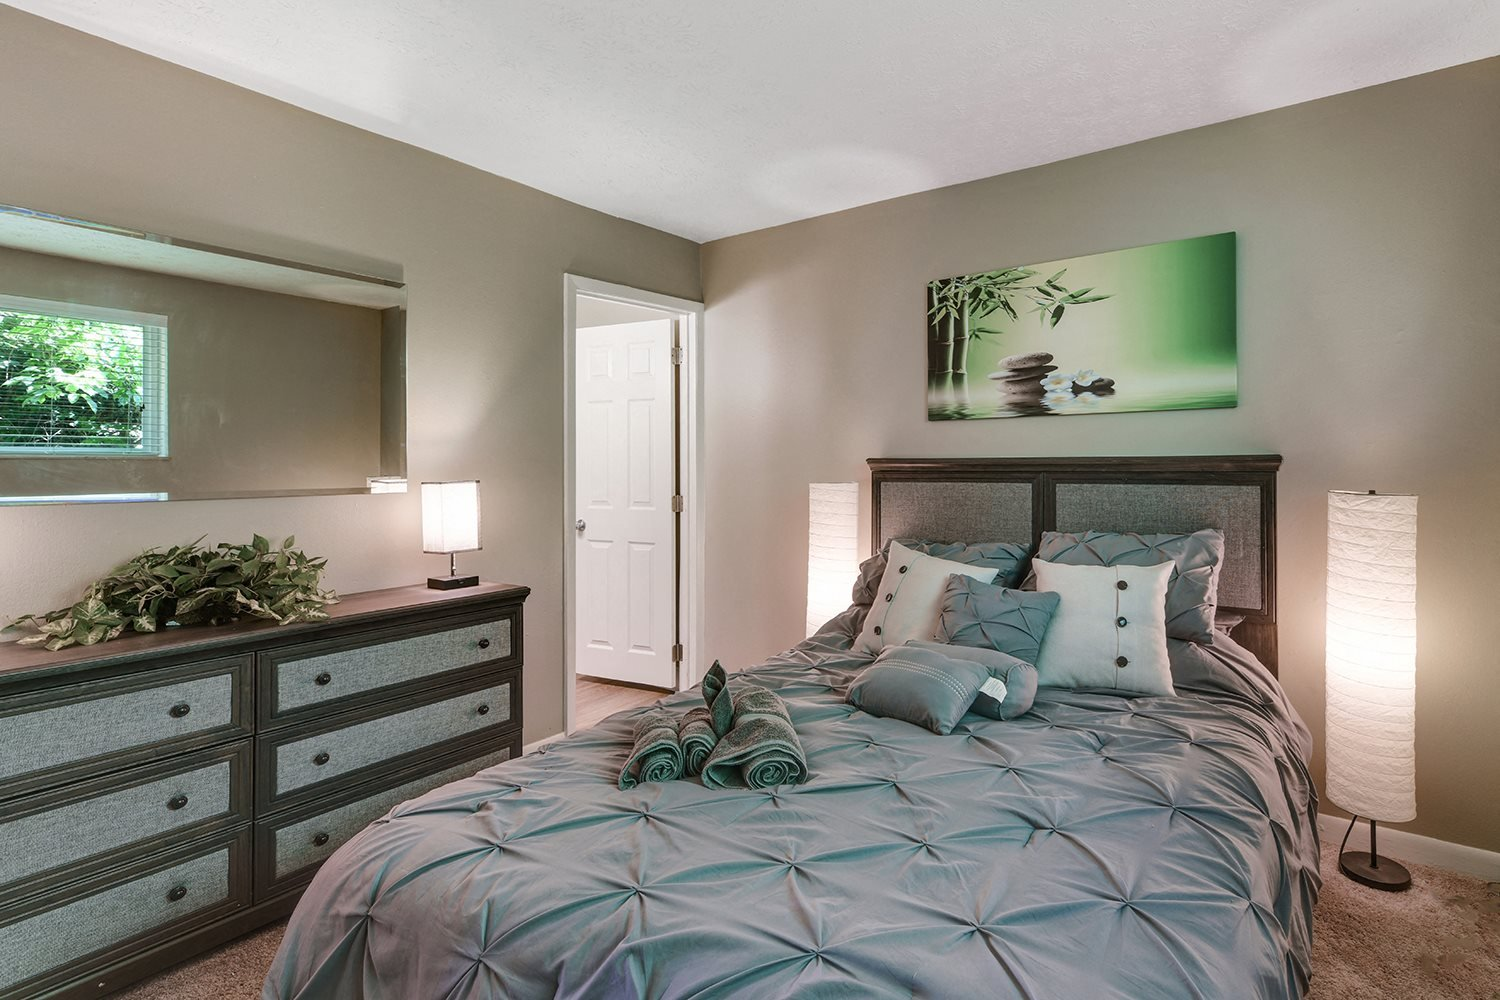 Spacious Bedroom With Comfortable Bed at Heritage Hill Estates Apartments, Cincinnati, 45227